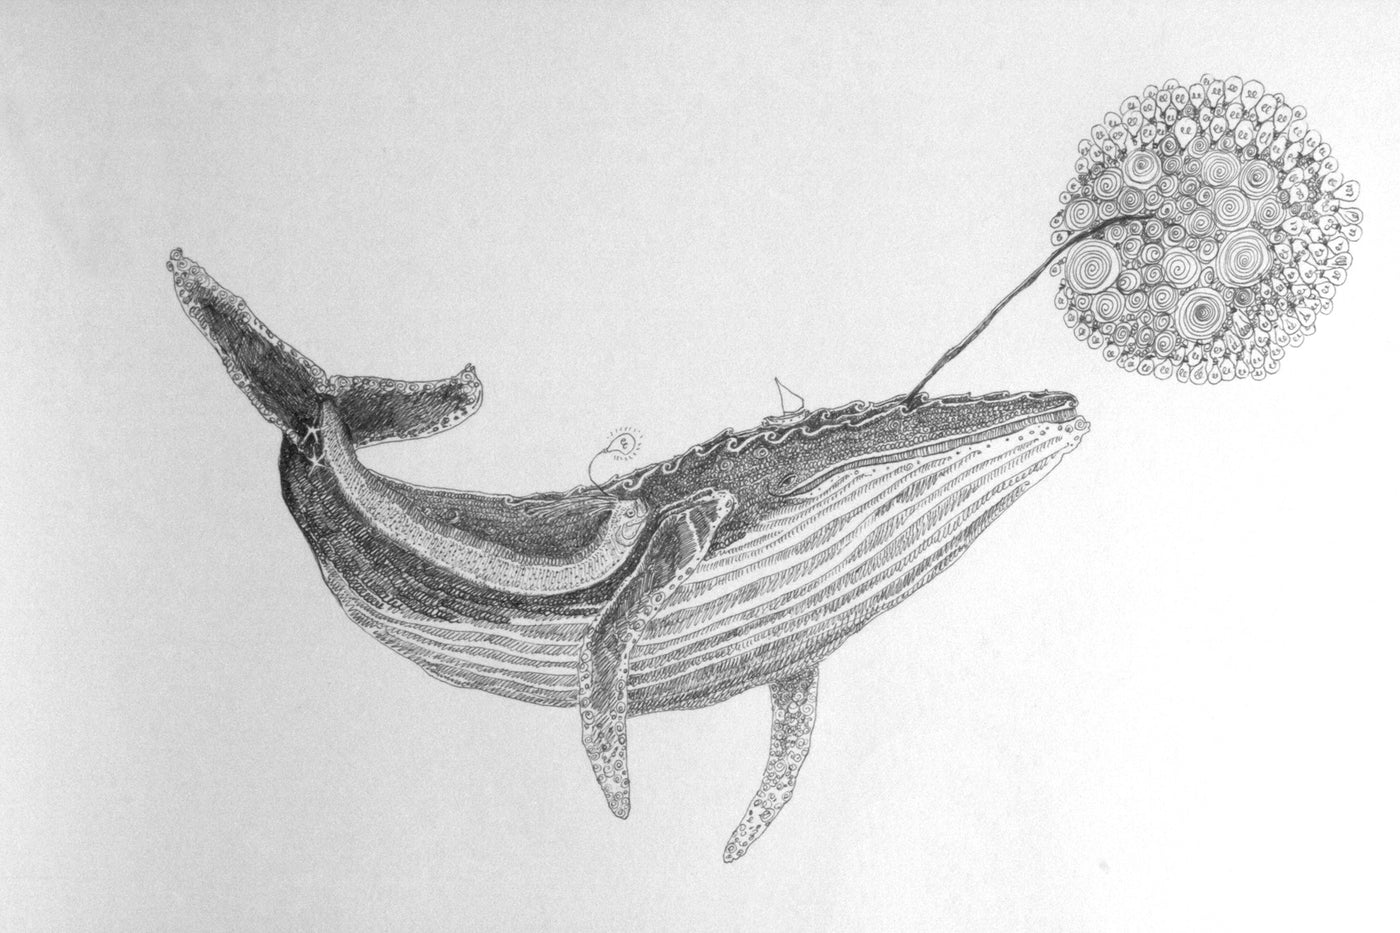 Humpback whale drawing small